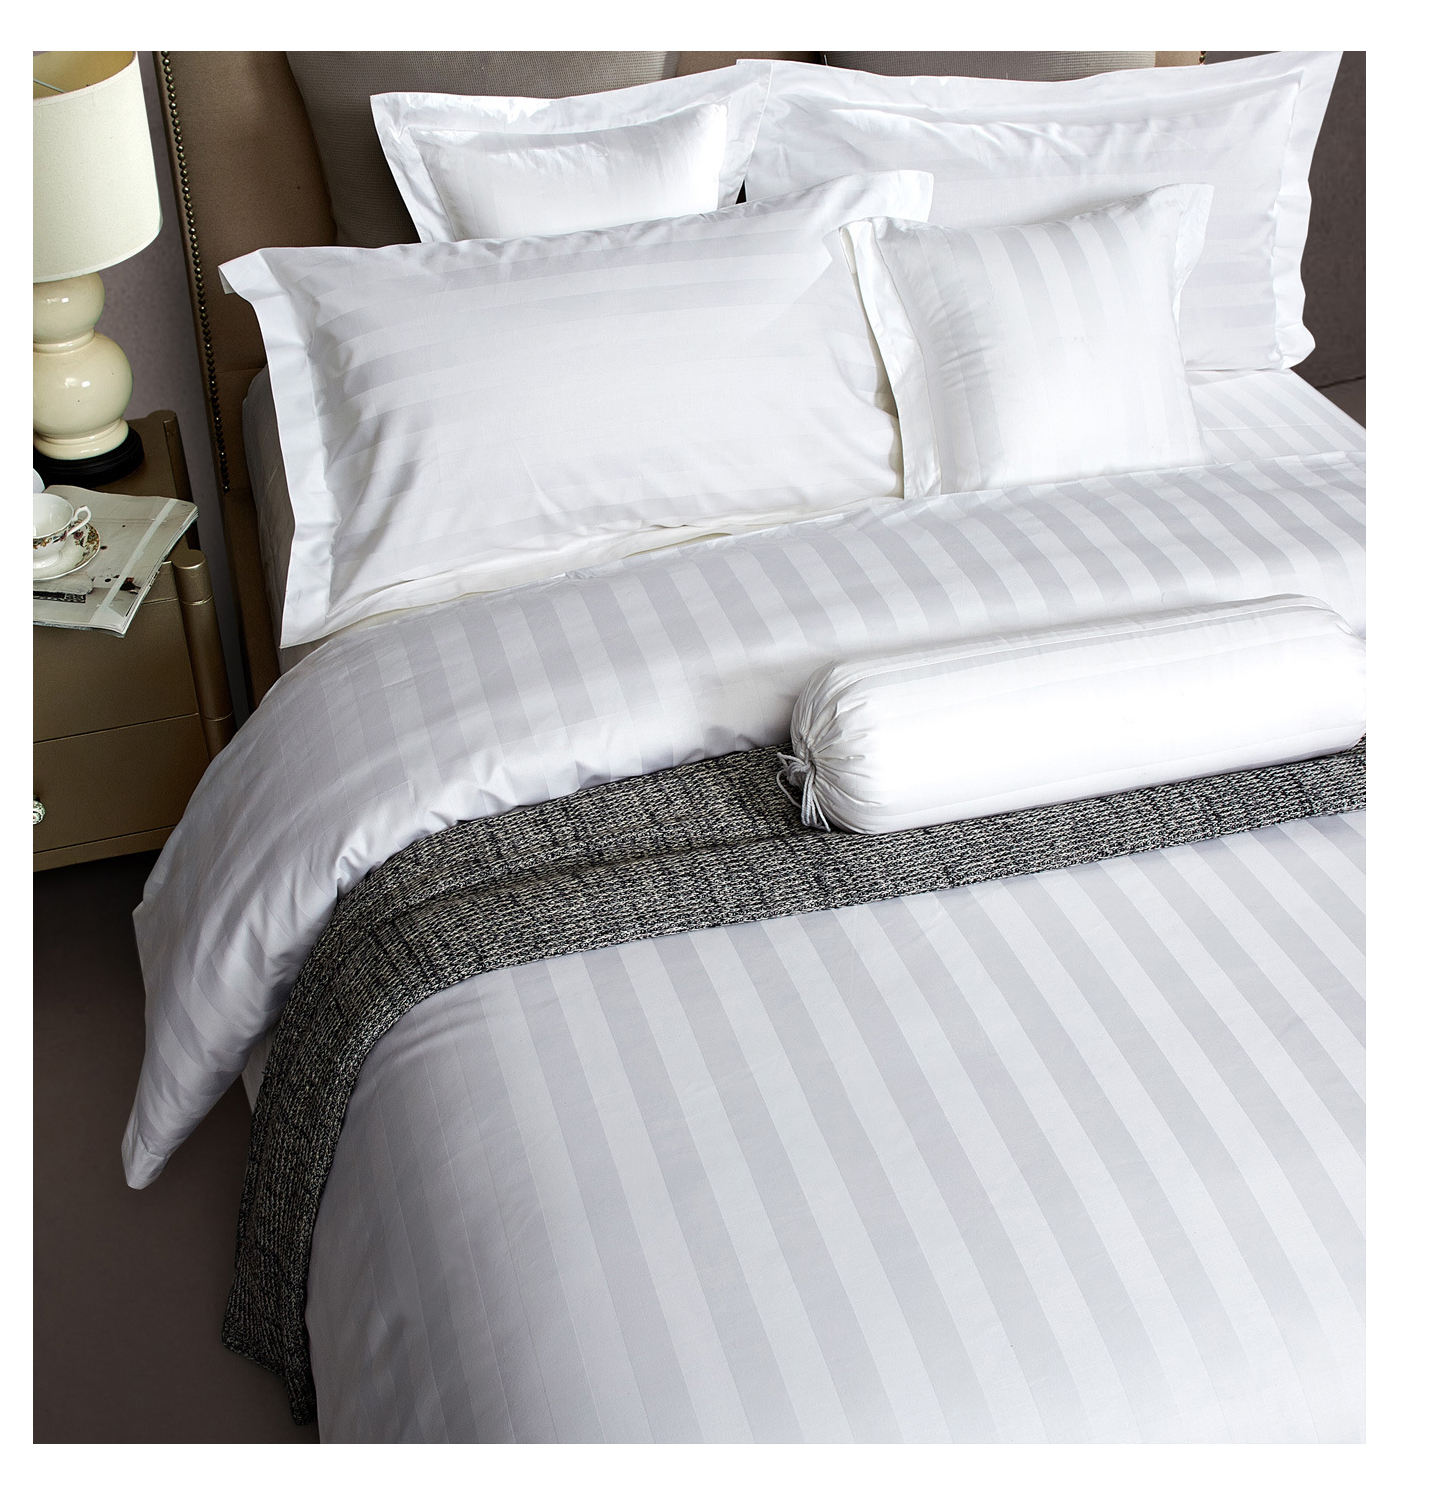 cheap hotel 100% cotton plain bad sheet cotton bedding set bedding suppliers white satin sheet sets bedding wholesale